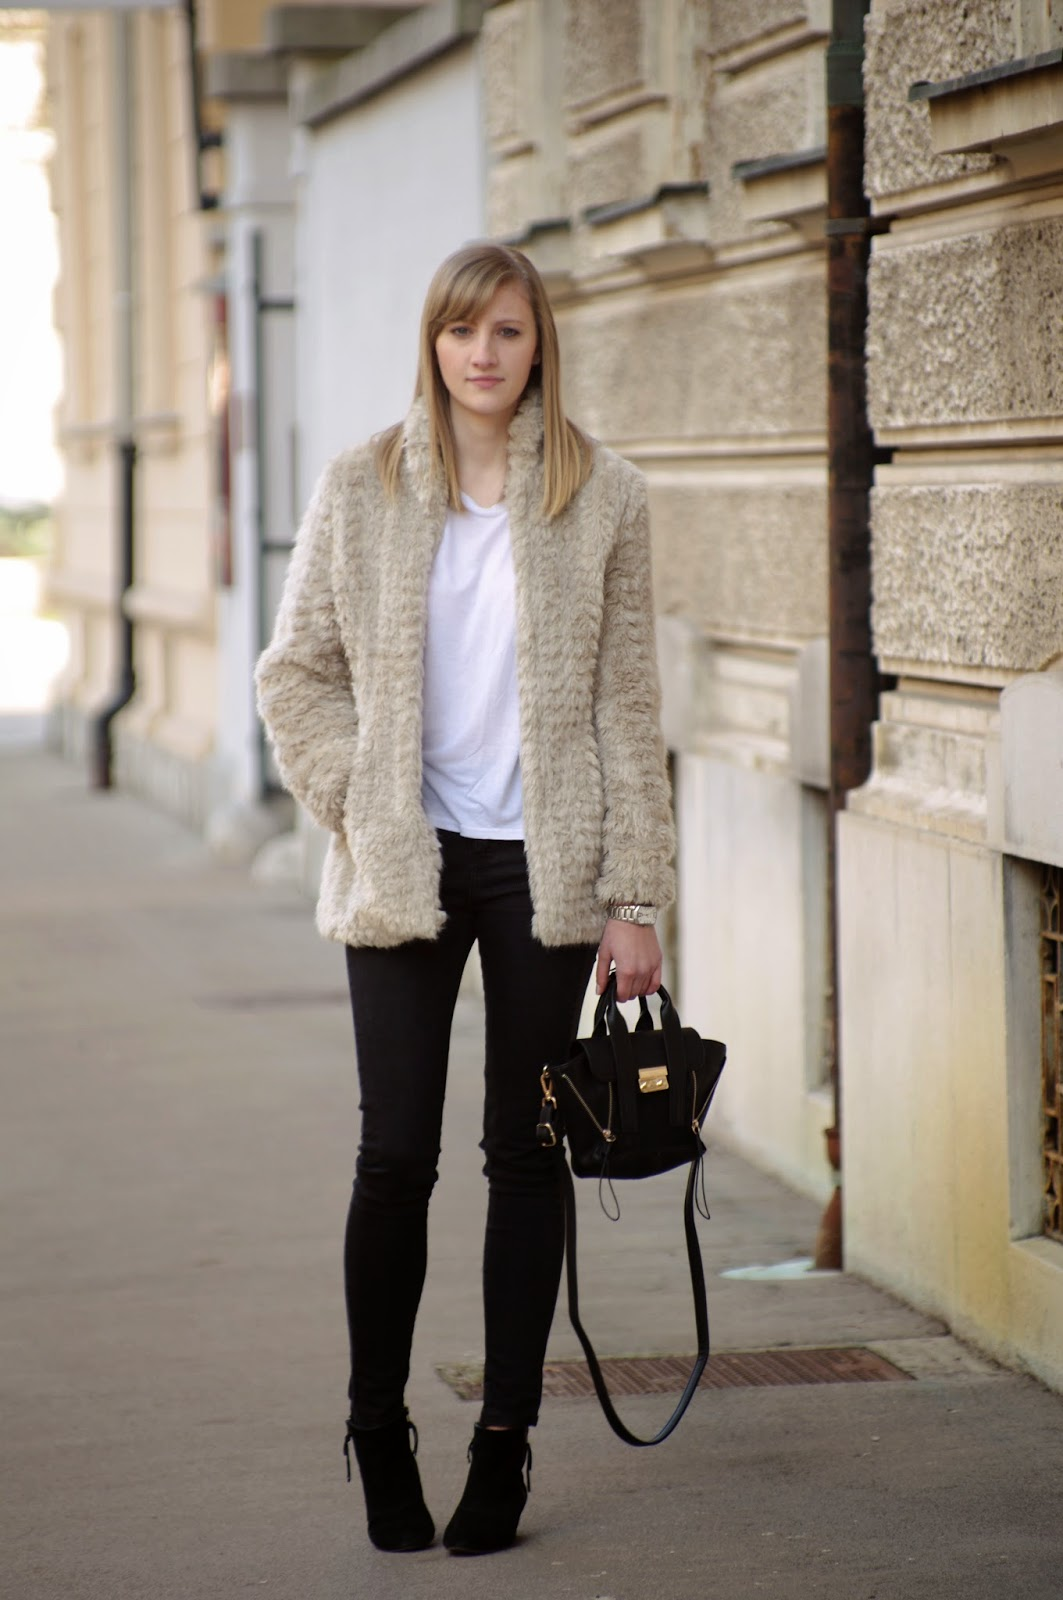 fur jacket, faux fur, nude beige jacket, mini pashli phillip lim lookalike replica, suede ankle boots, stockholm street style, ljubljana street style, fashion blog blogger, style blogger, winter trends 2014